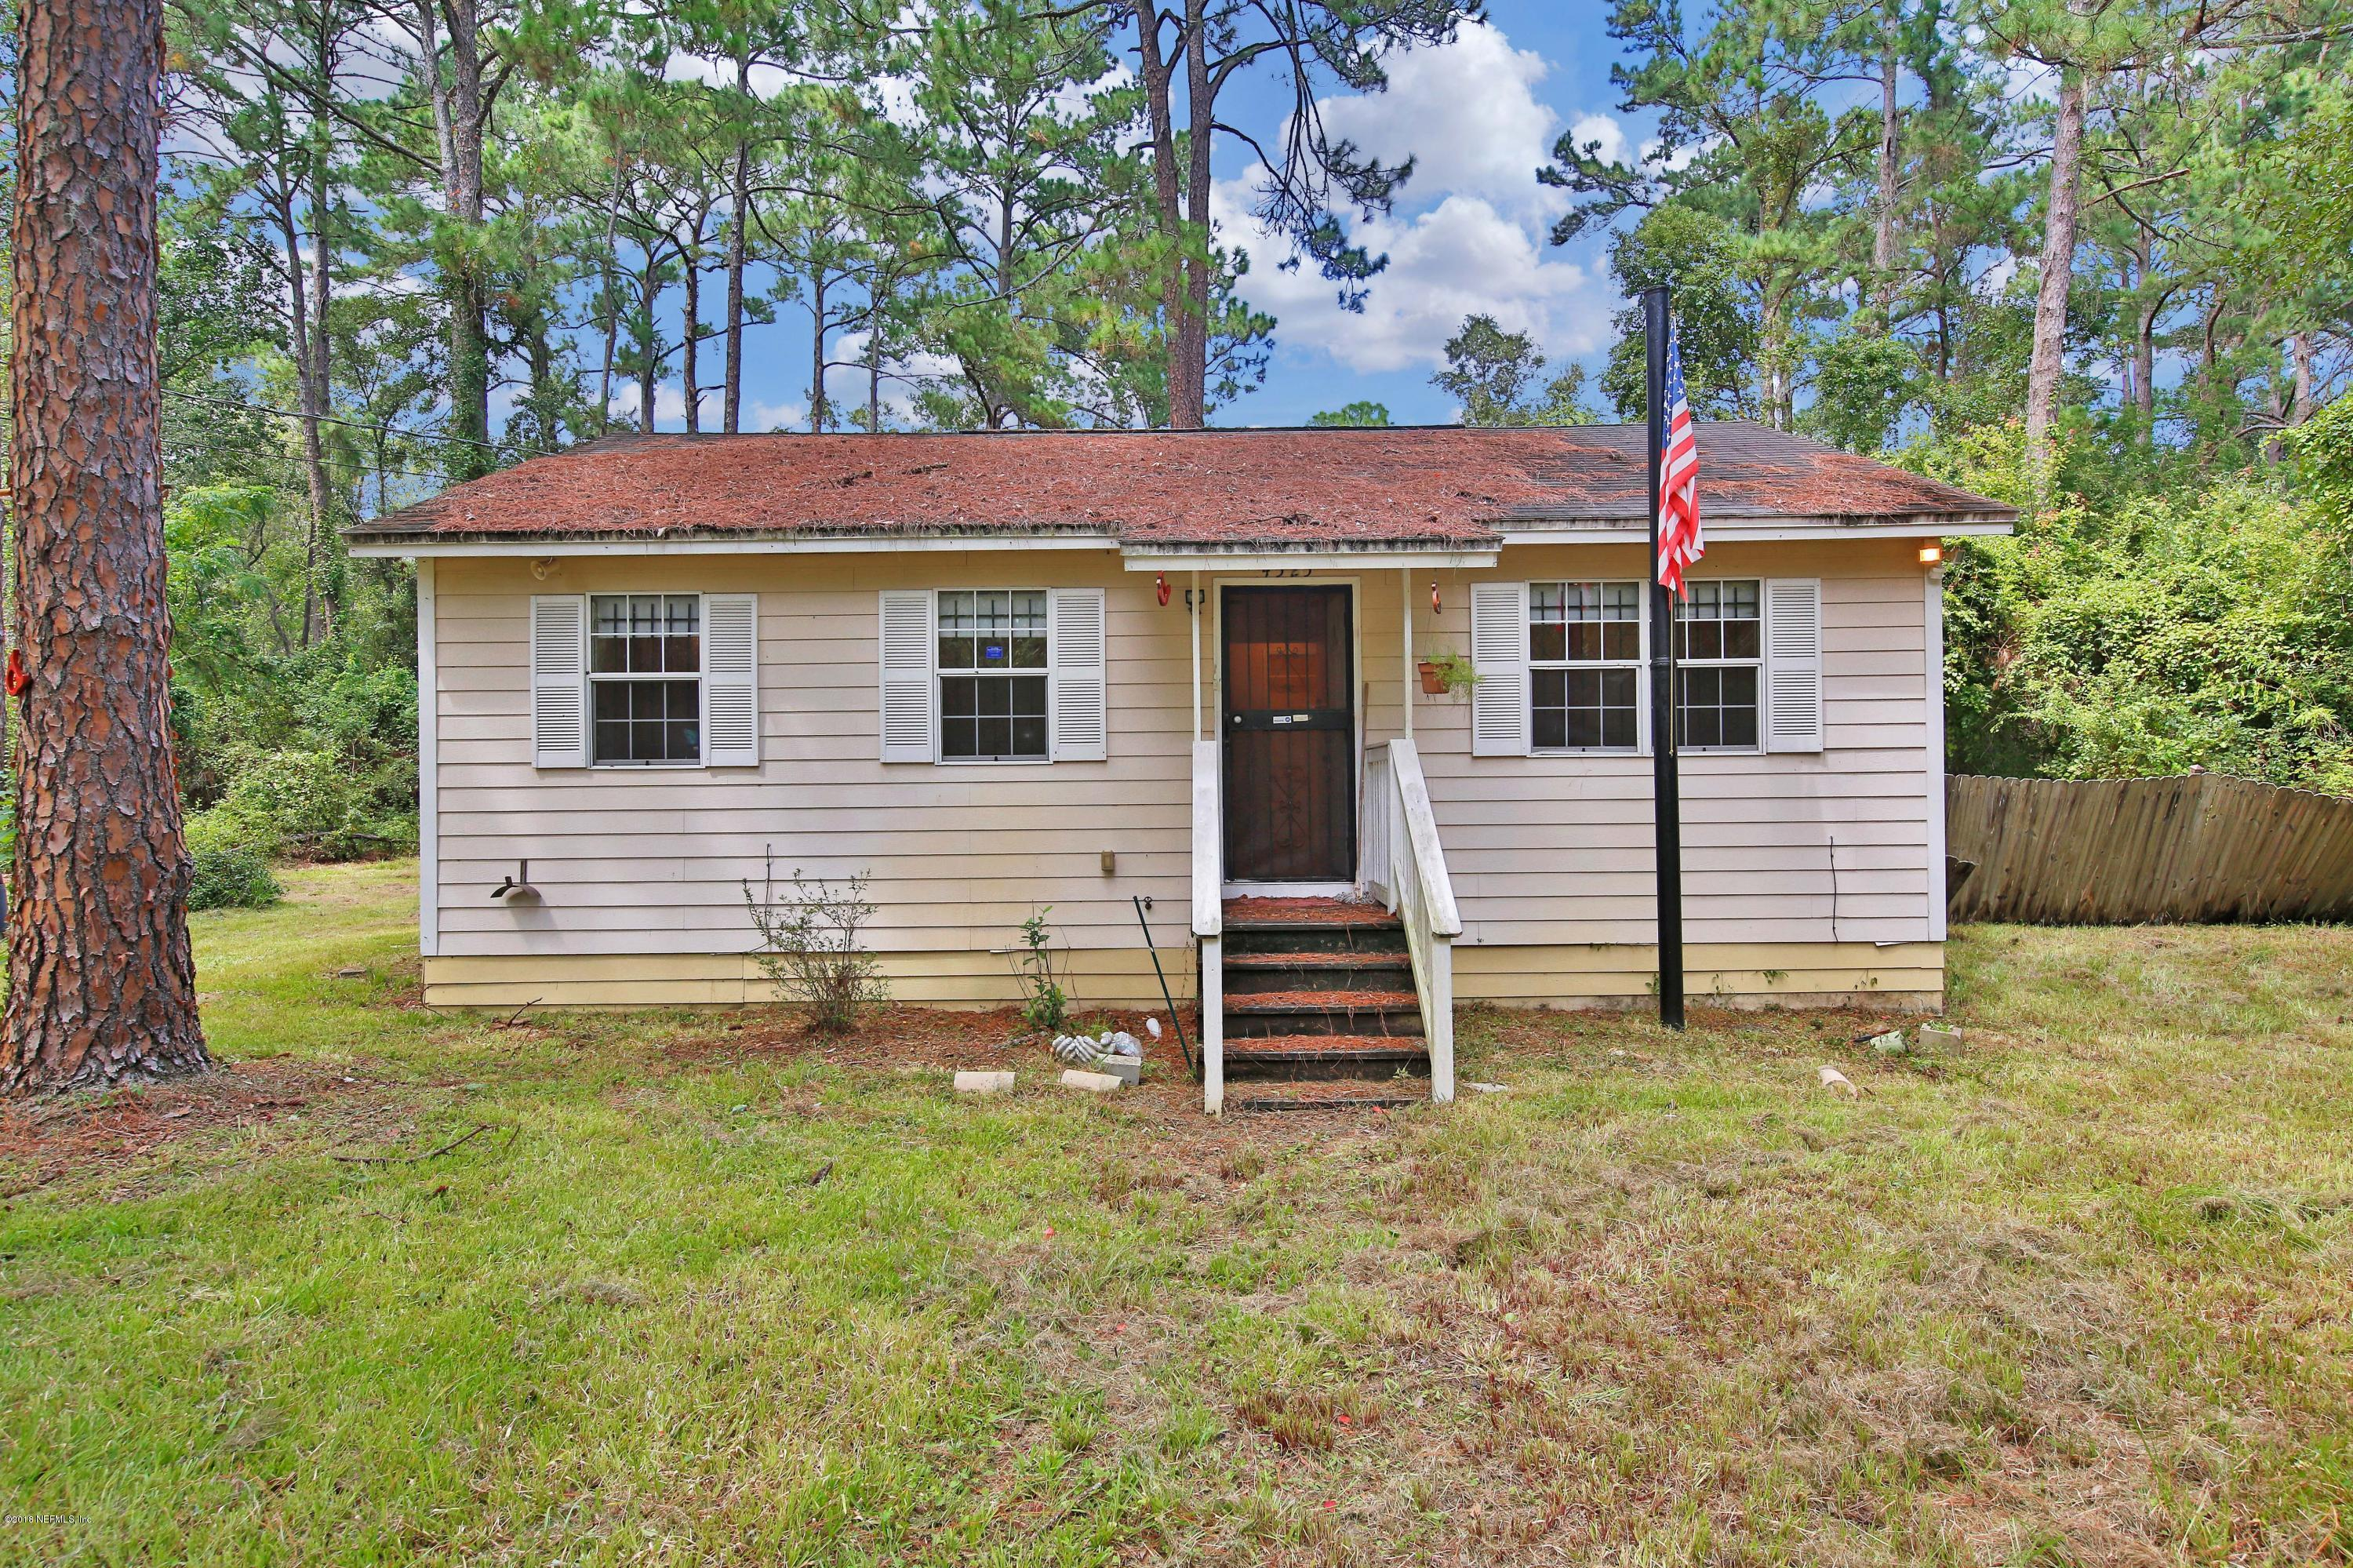 4525 KENNDLE, JACKSONVILLE, FLORIDA 32208, 3 Bedrooms Bedrooms, ,1 BathroomBathrooms,Residential - single family,For sale,KENNDLE,958608